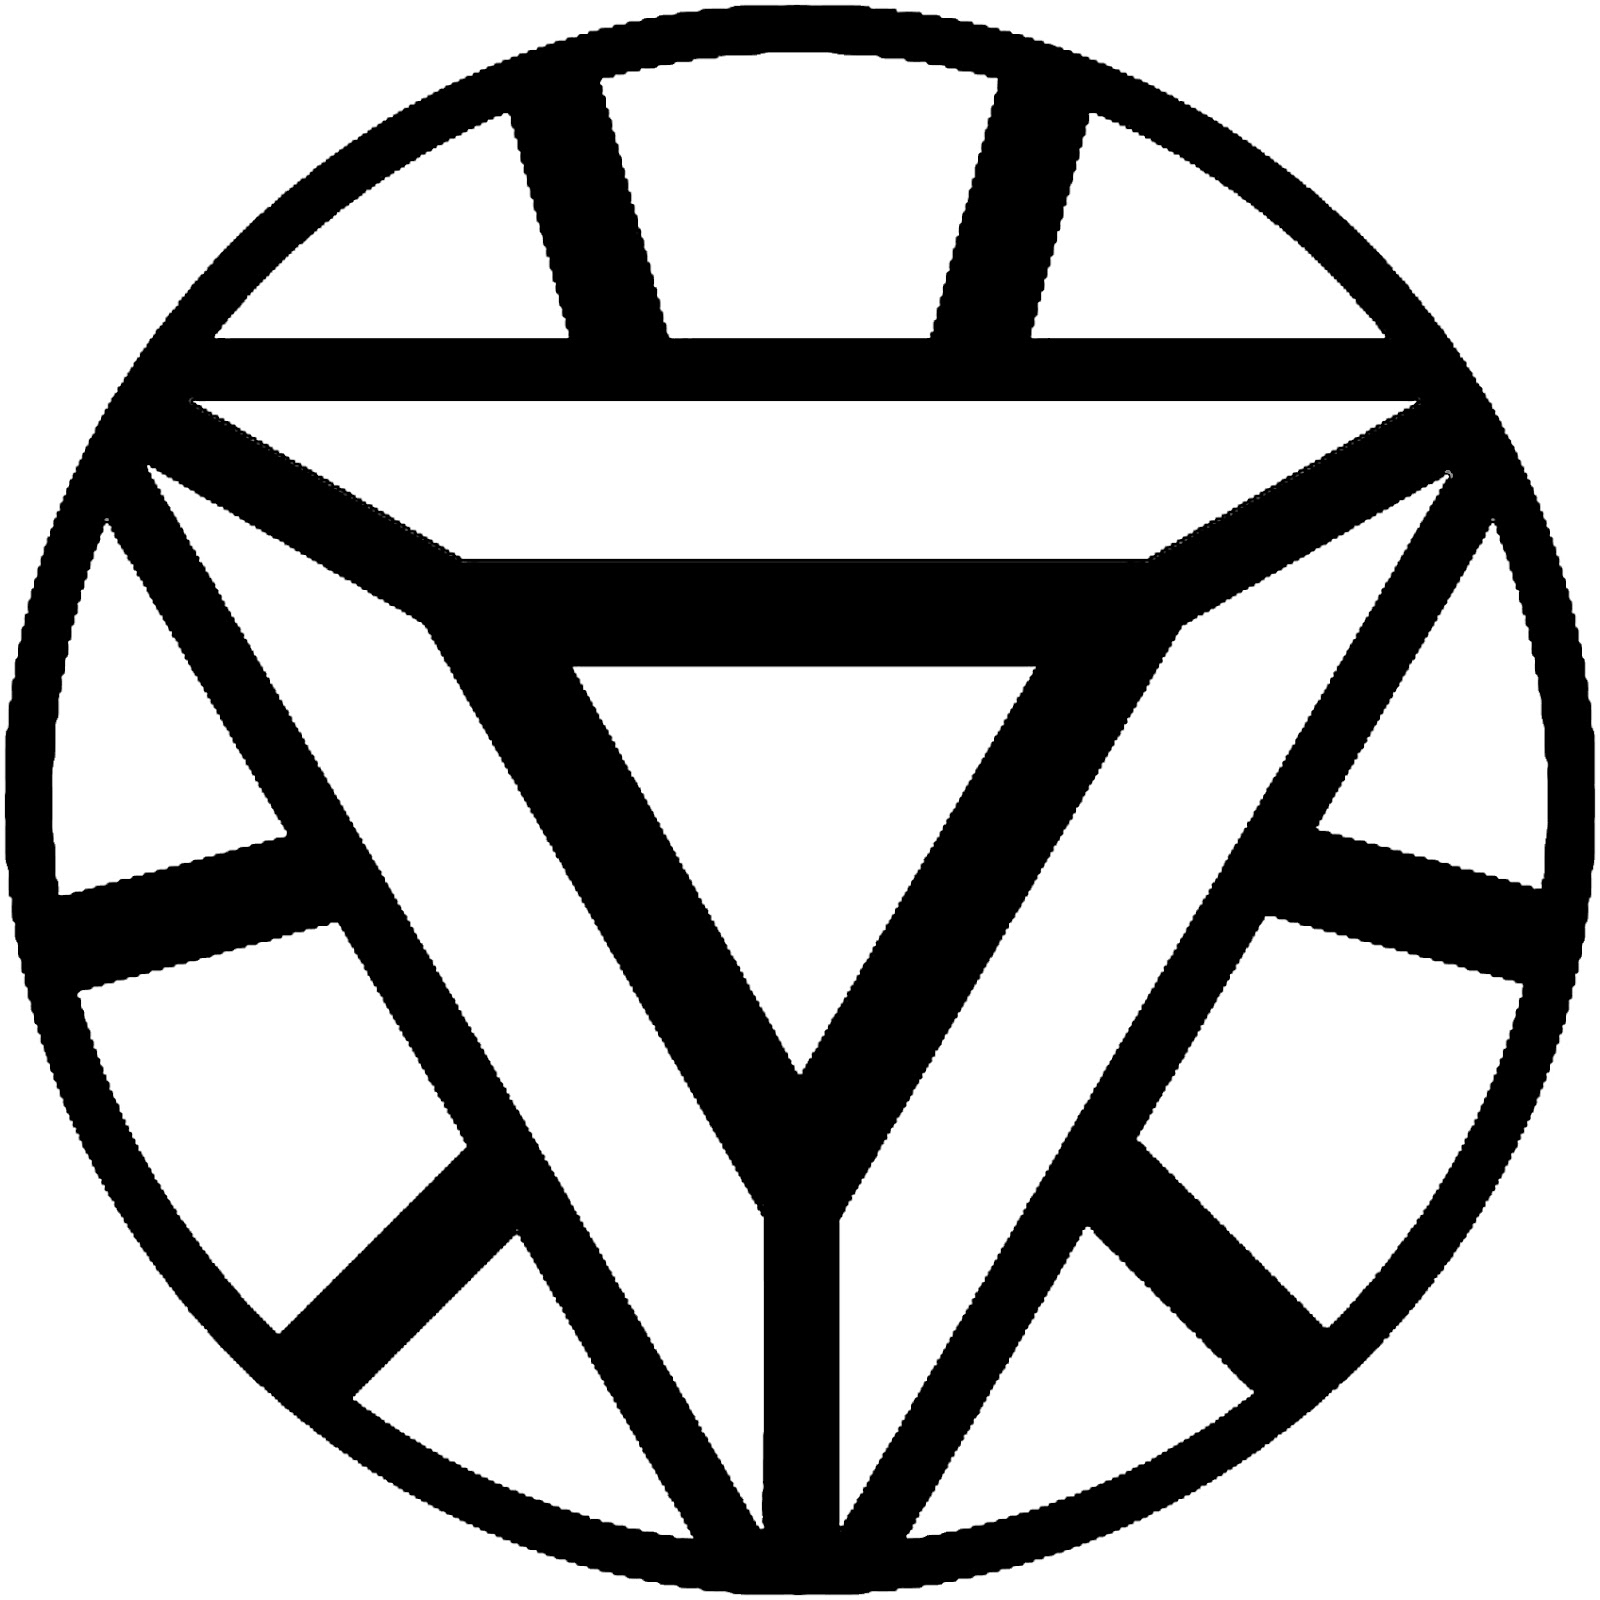 Built to, Build to: Iron Man's Chest Arc Reactor 1 Iron Man 3 Arc Reactor Logo